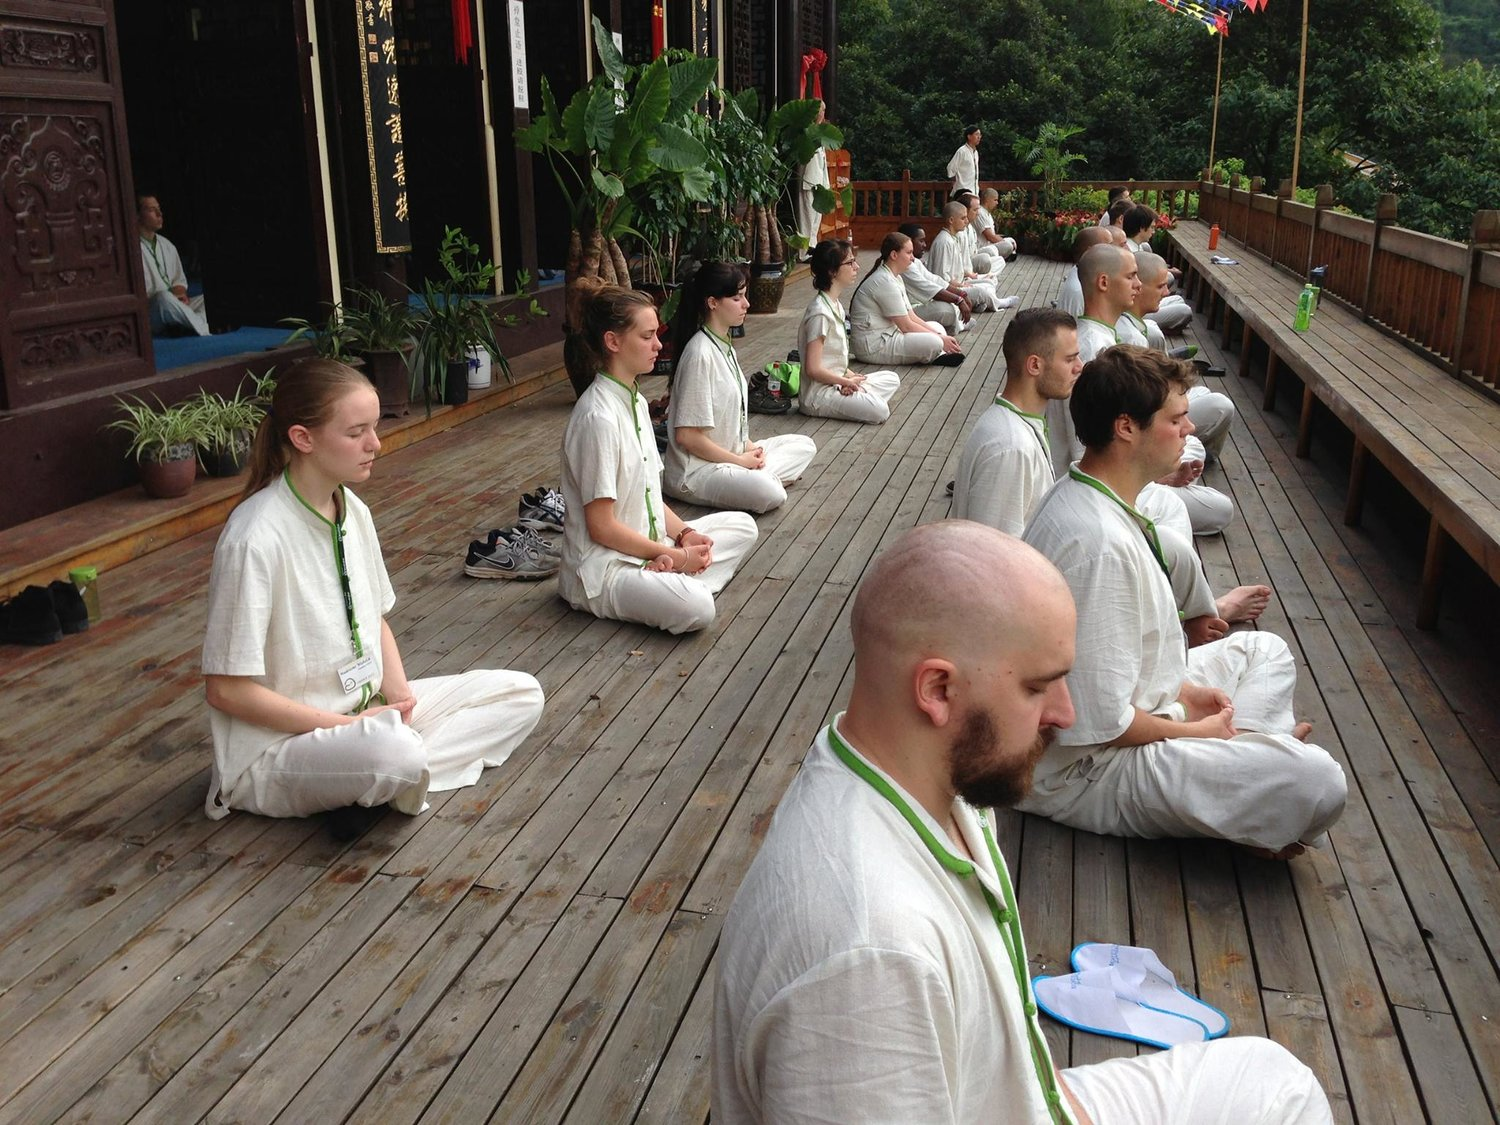 Morning Mediation in Chan Buddhist temple in Wenzhou China. Cory's bald head can be seen front right.